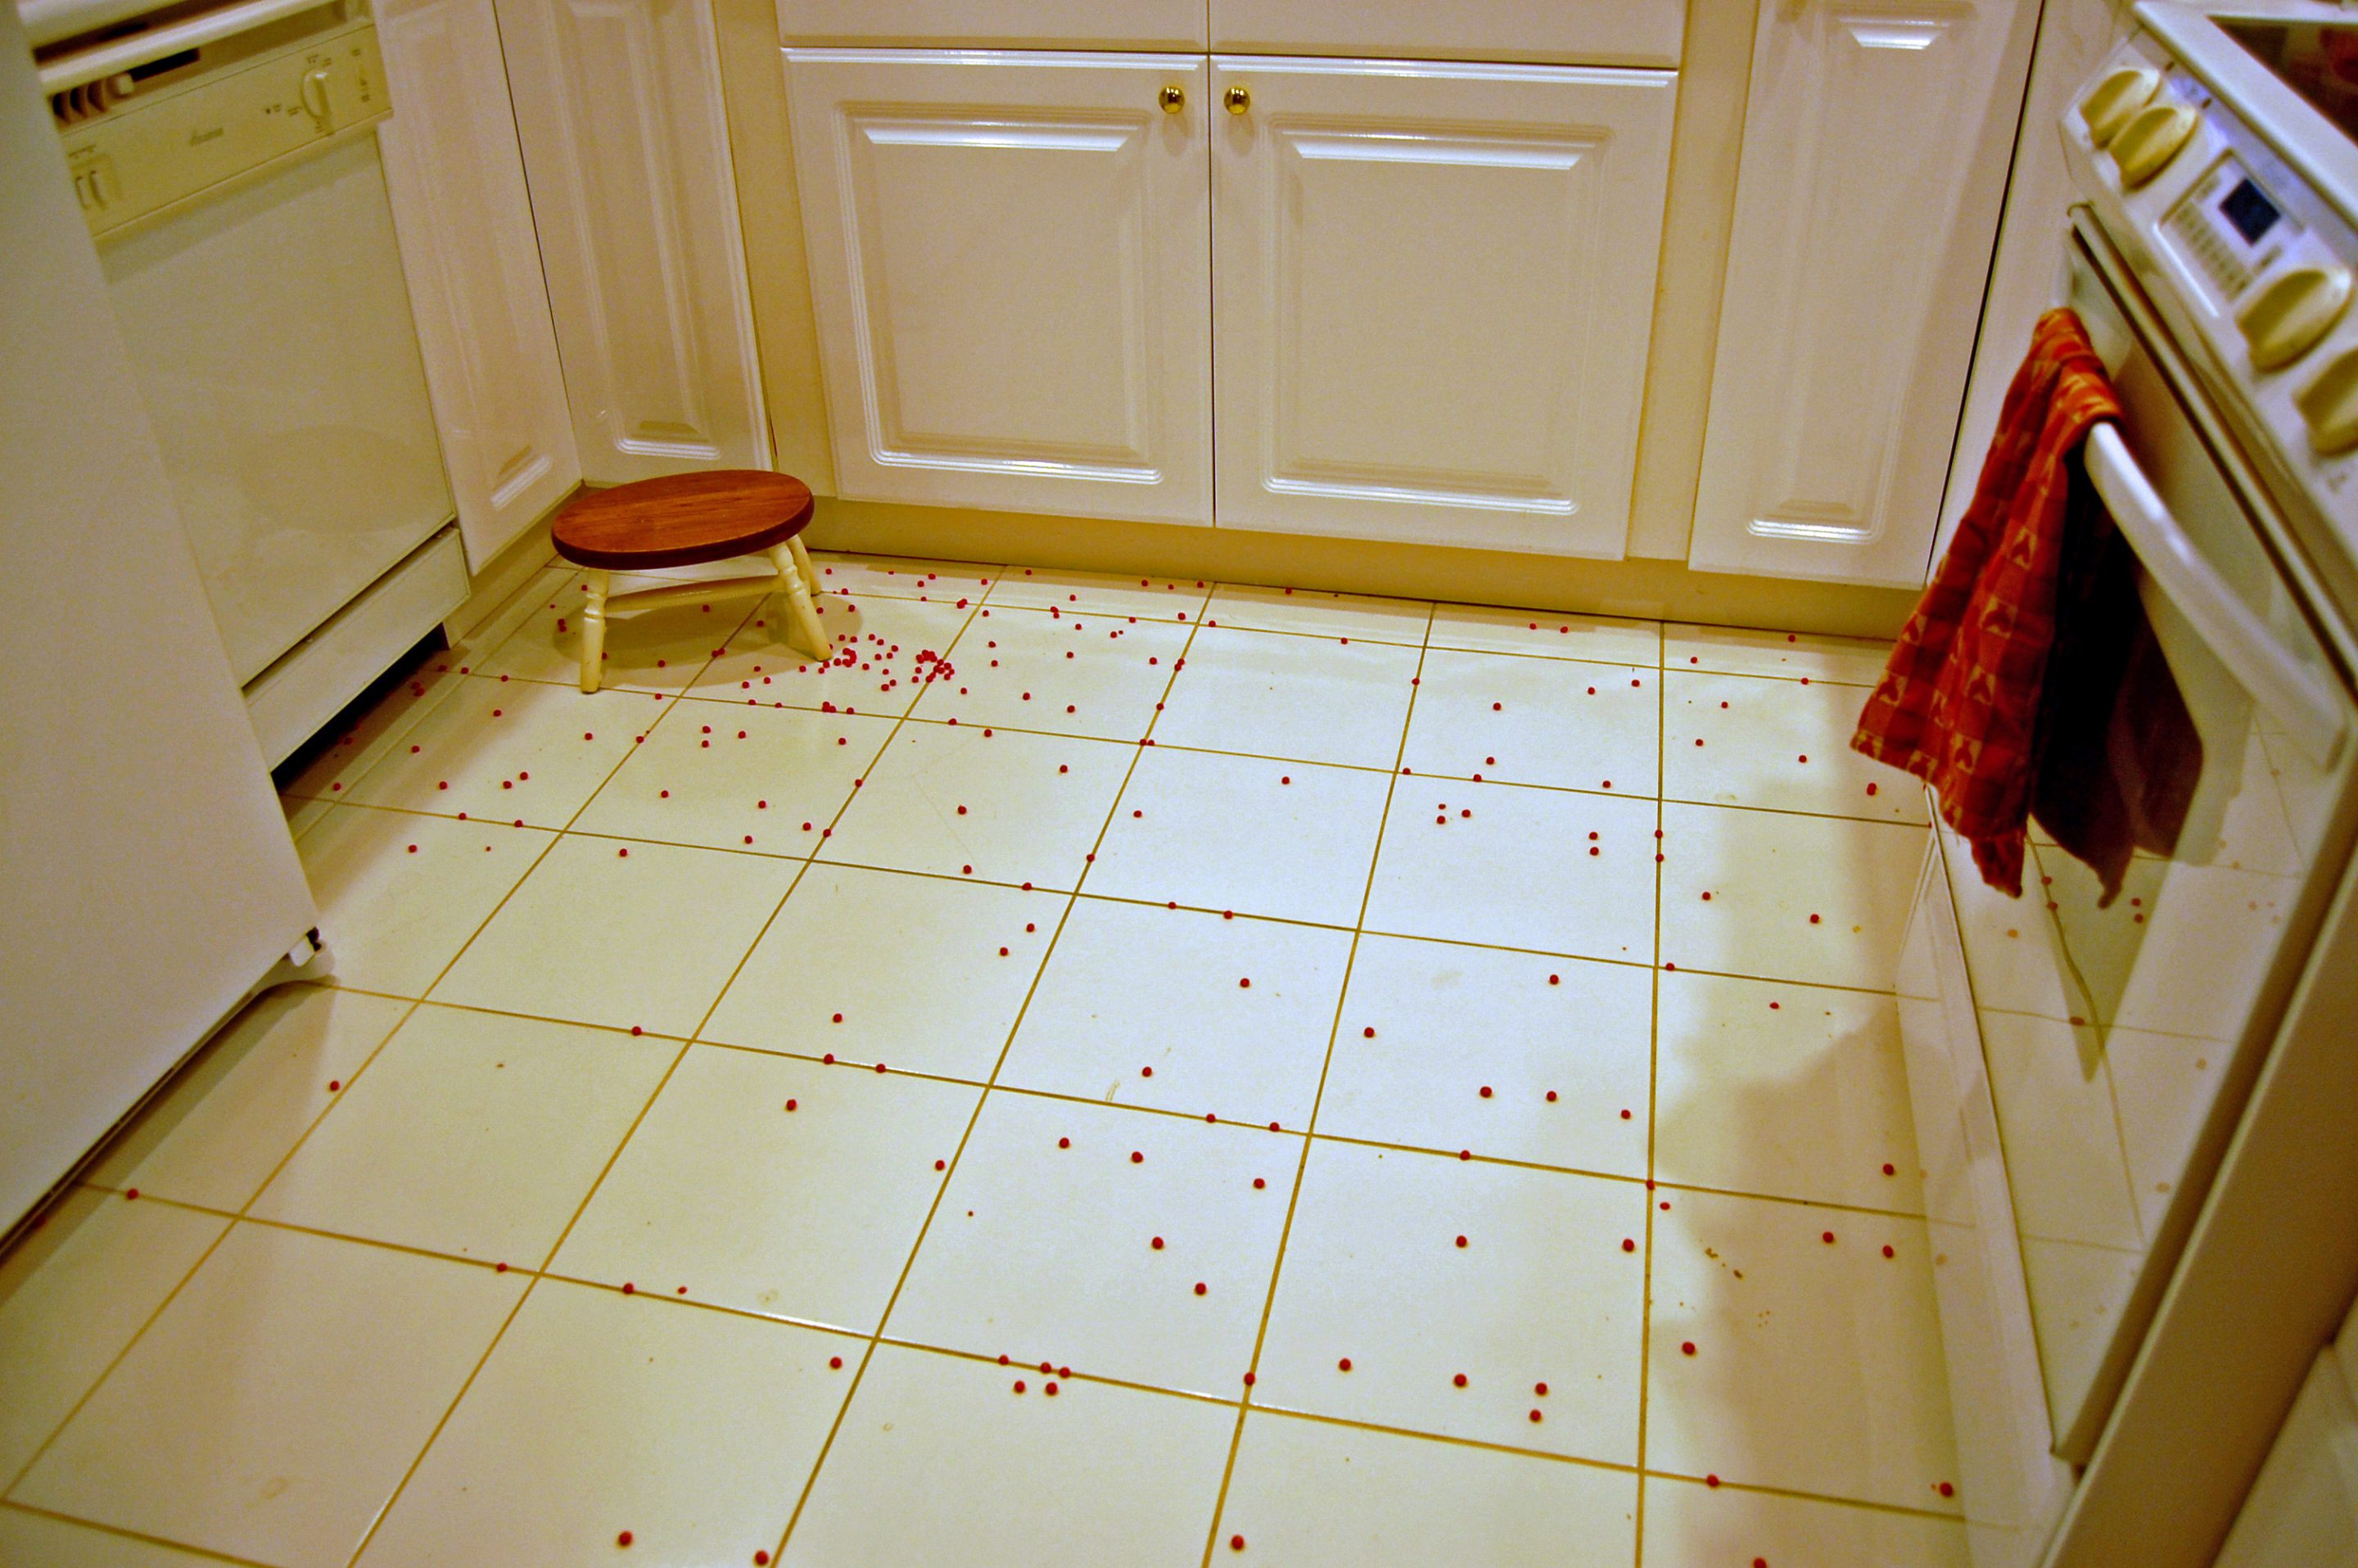 Kitchen Spill